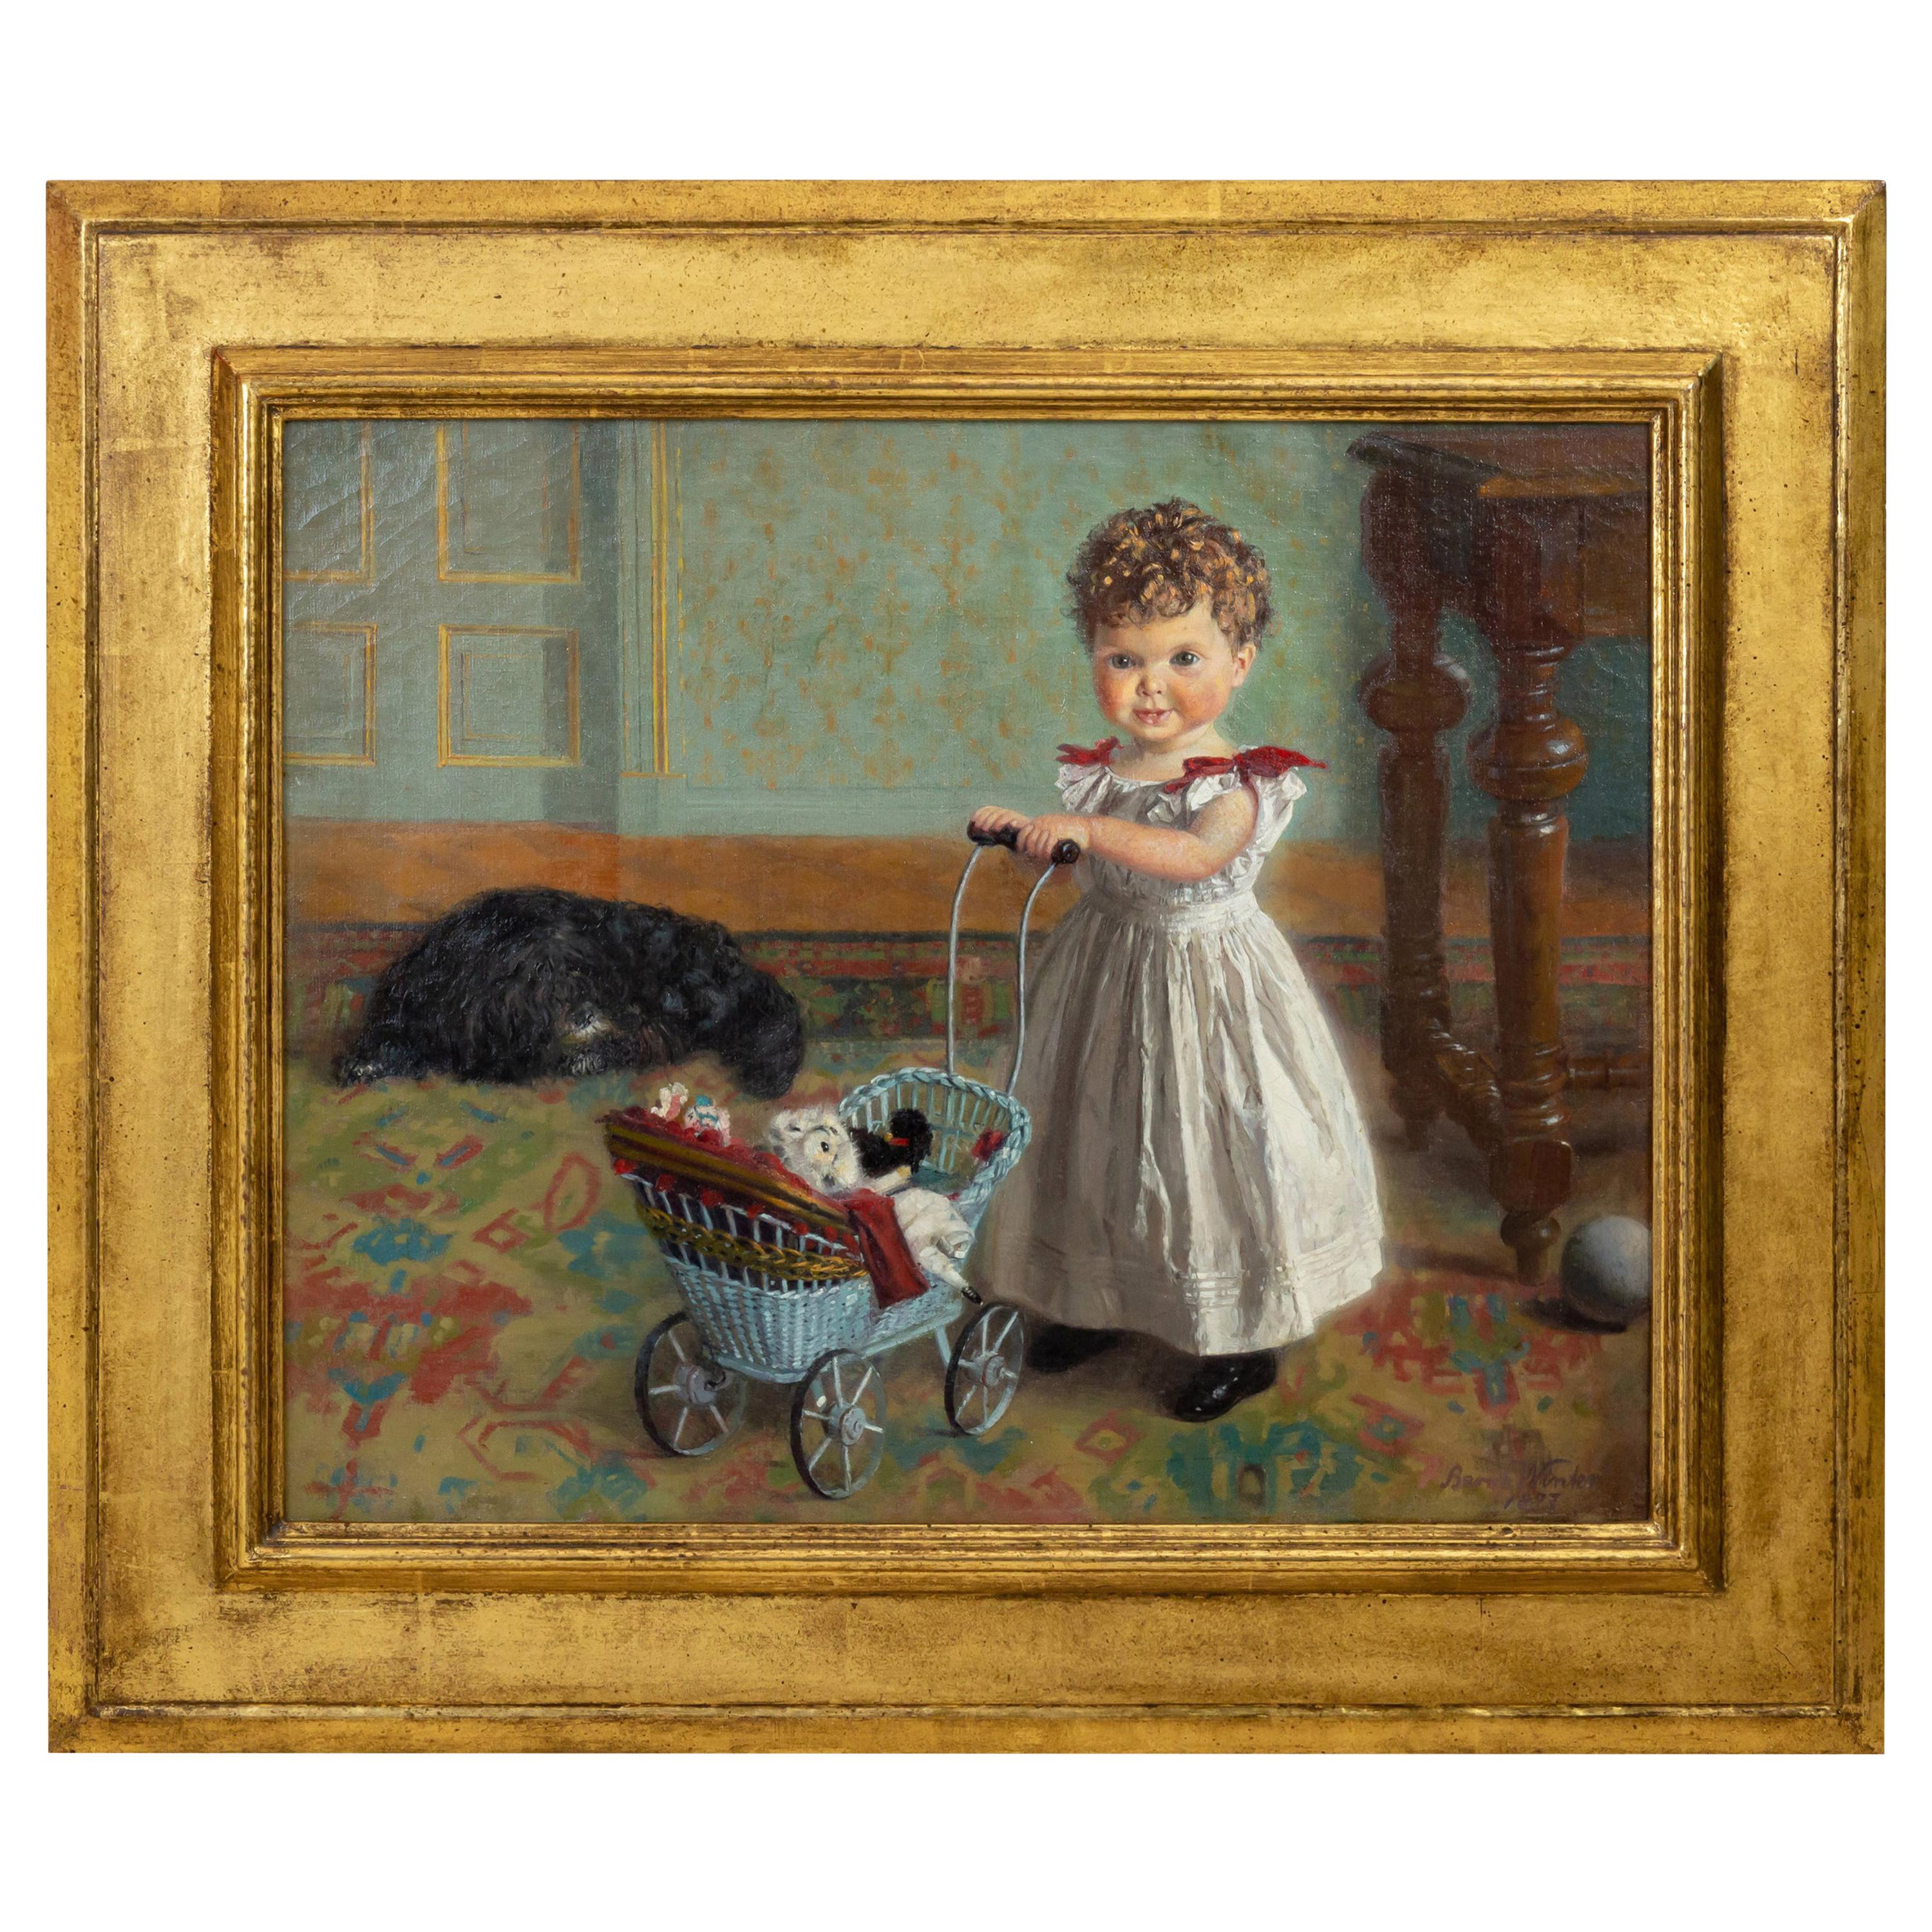 Portrait of a Little Girl in Interior, Oil on Canvas, 1897